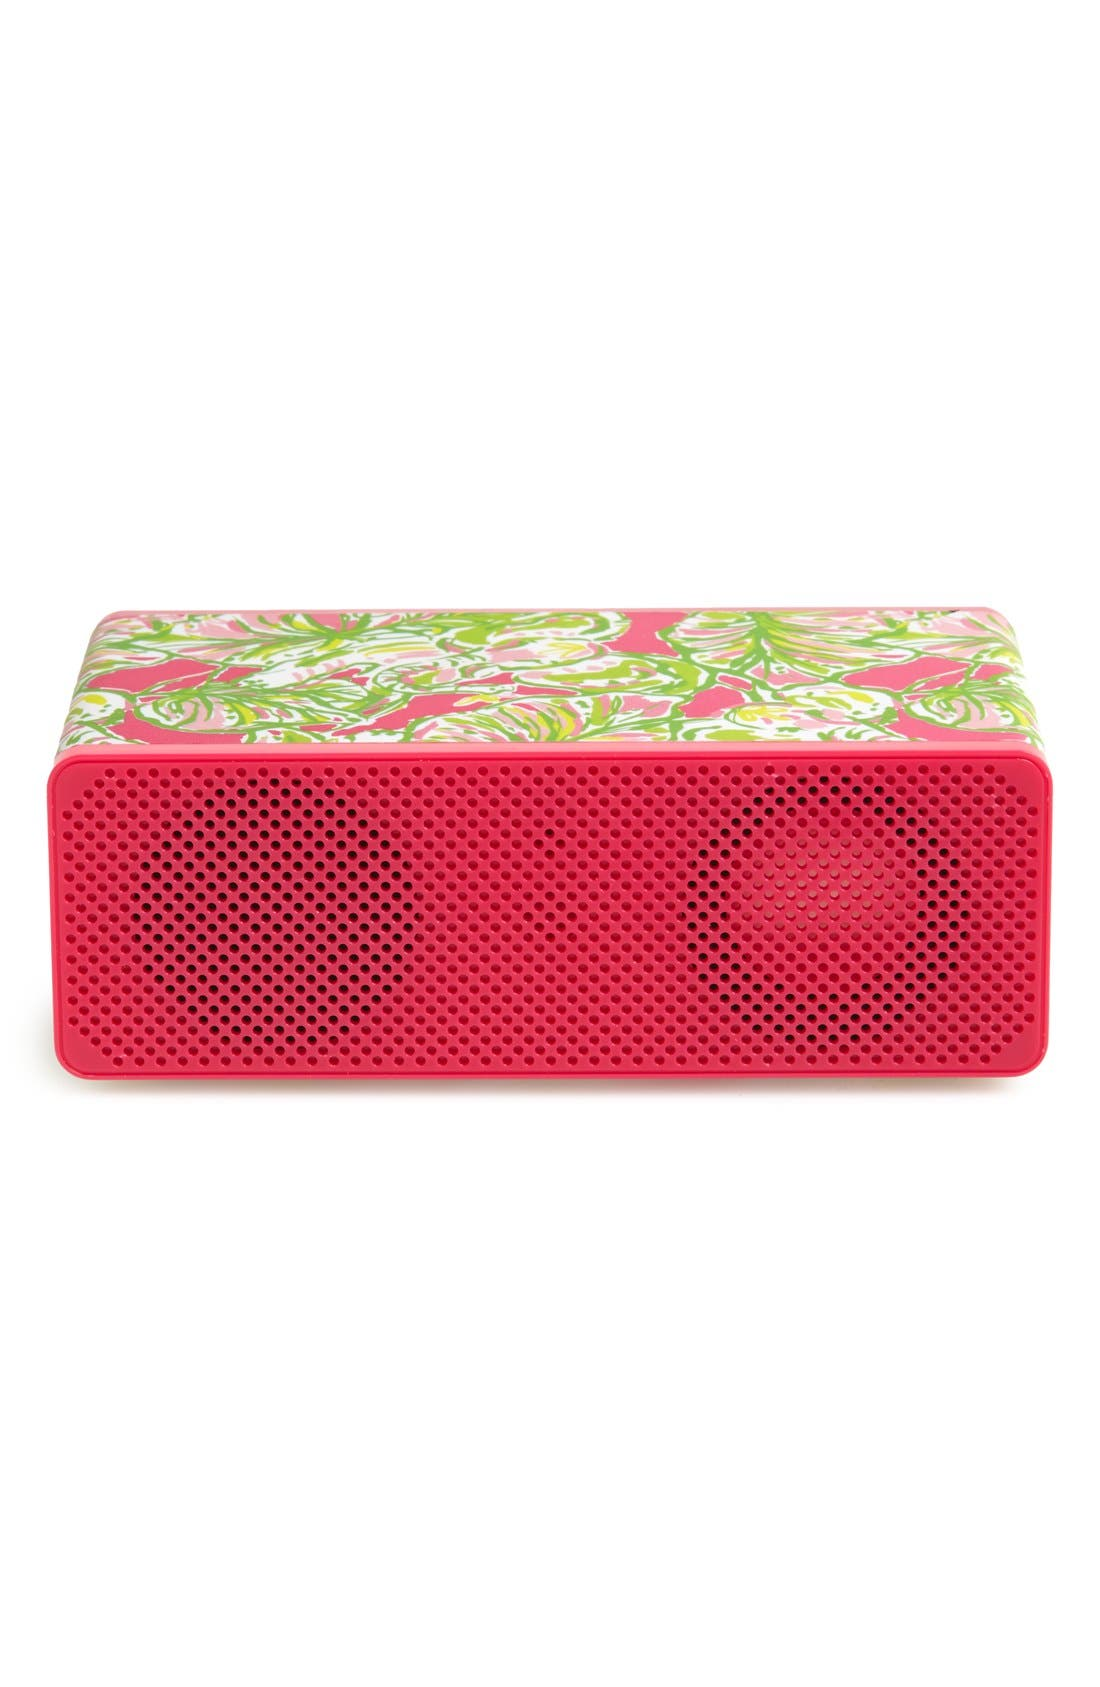 Alternate Image 1 Selected - Lilly Pulitzer® 'Elephant Ear' Wireless Bluetooth® Speaker